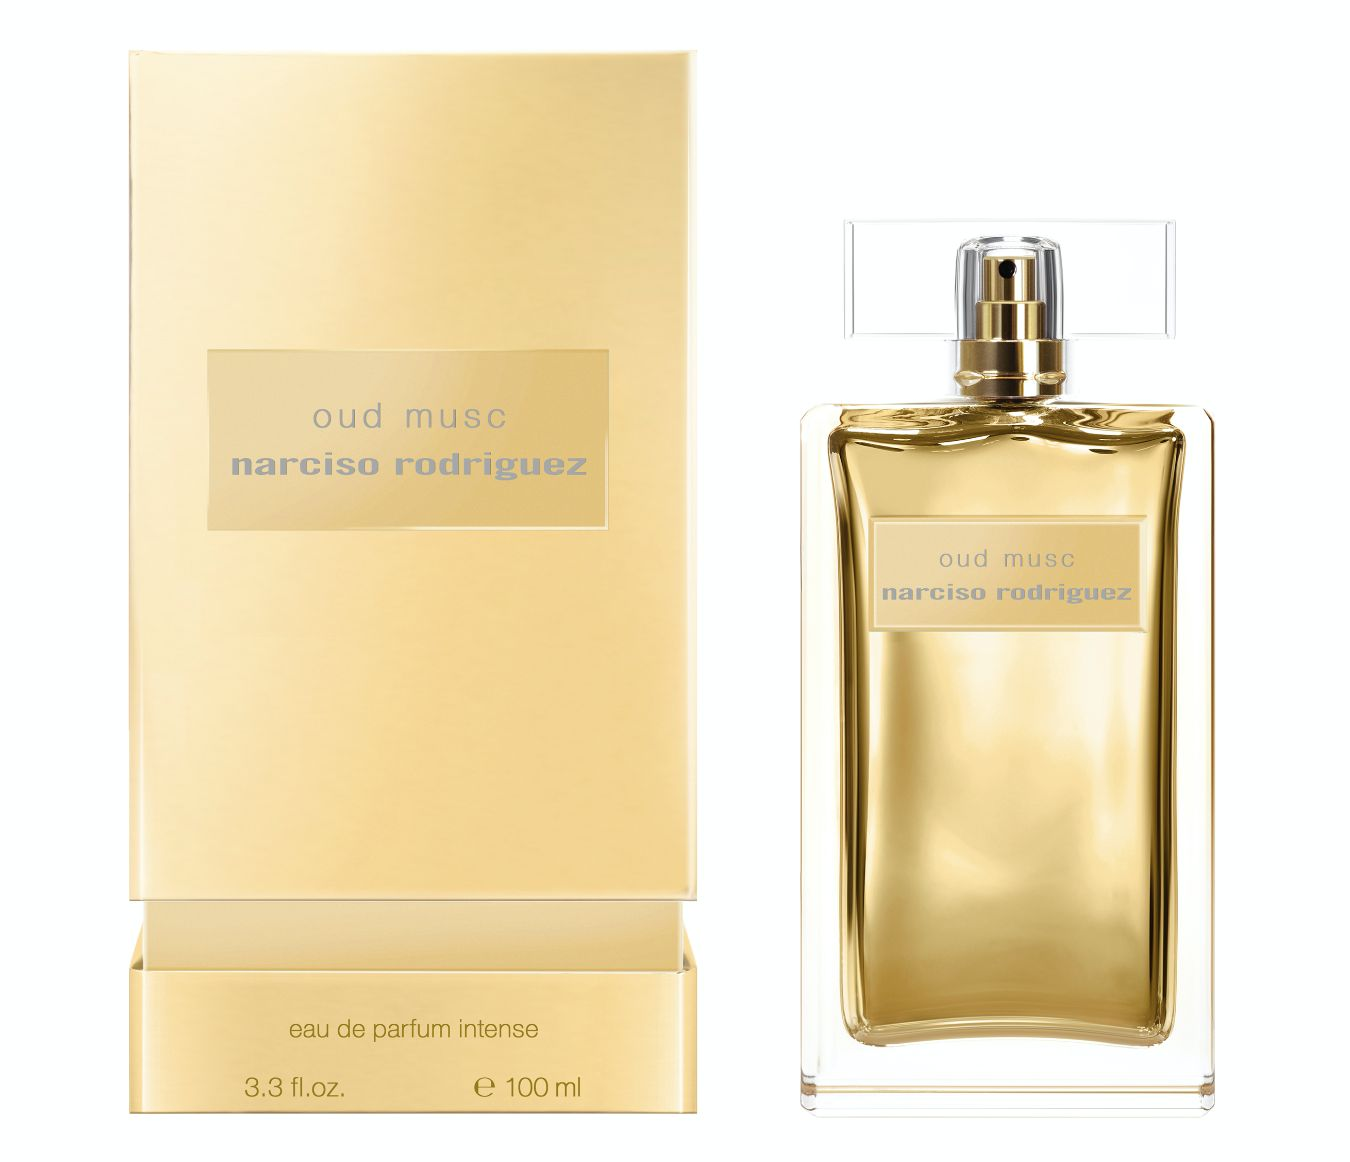 3c076d5dc Oud Musc Narciso Rodriguez perfume - a new fragrance for women and ...